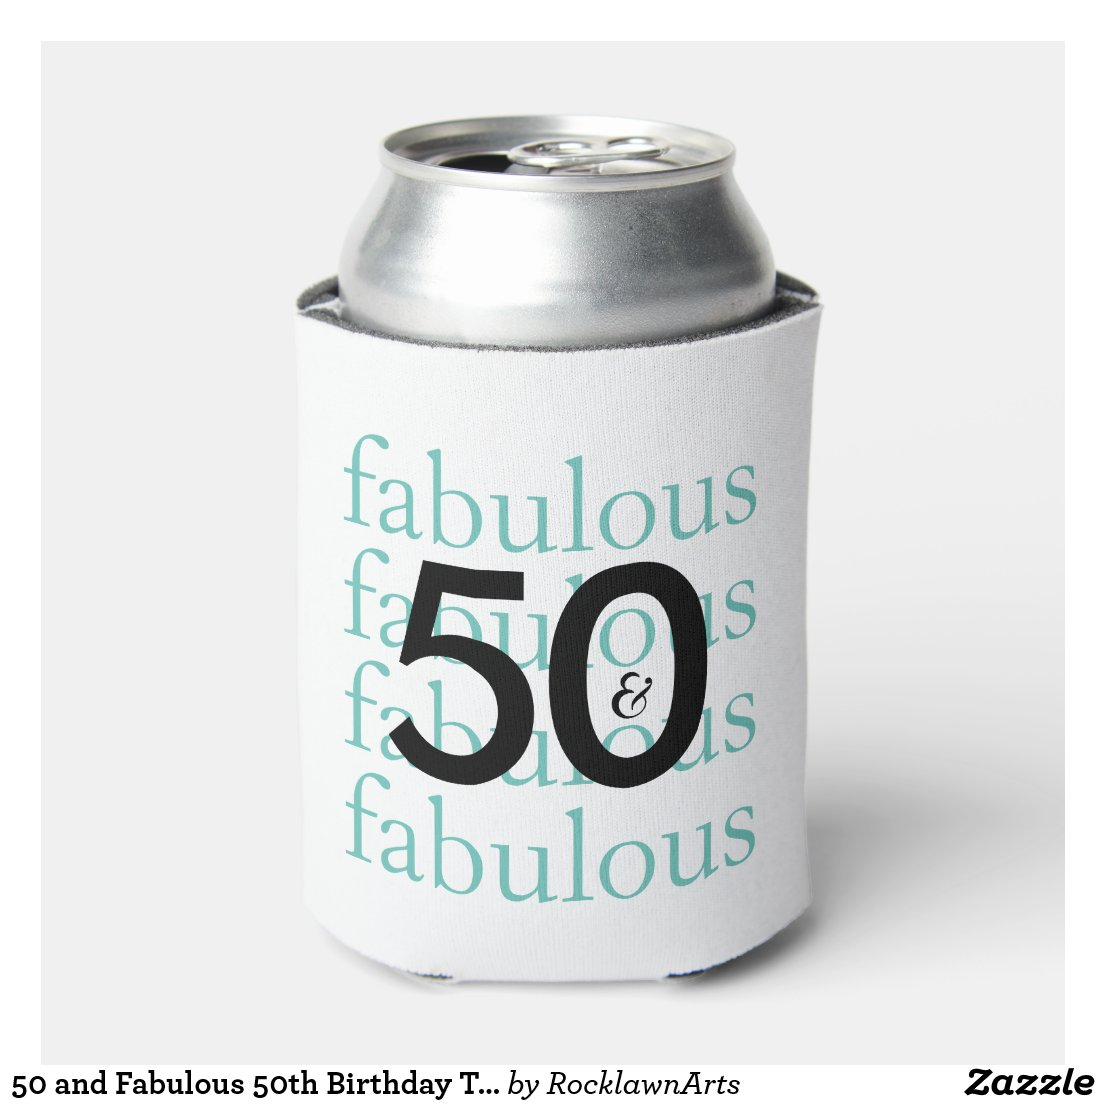 50 and Fabulous 50th Birthday Gift Can Cooler